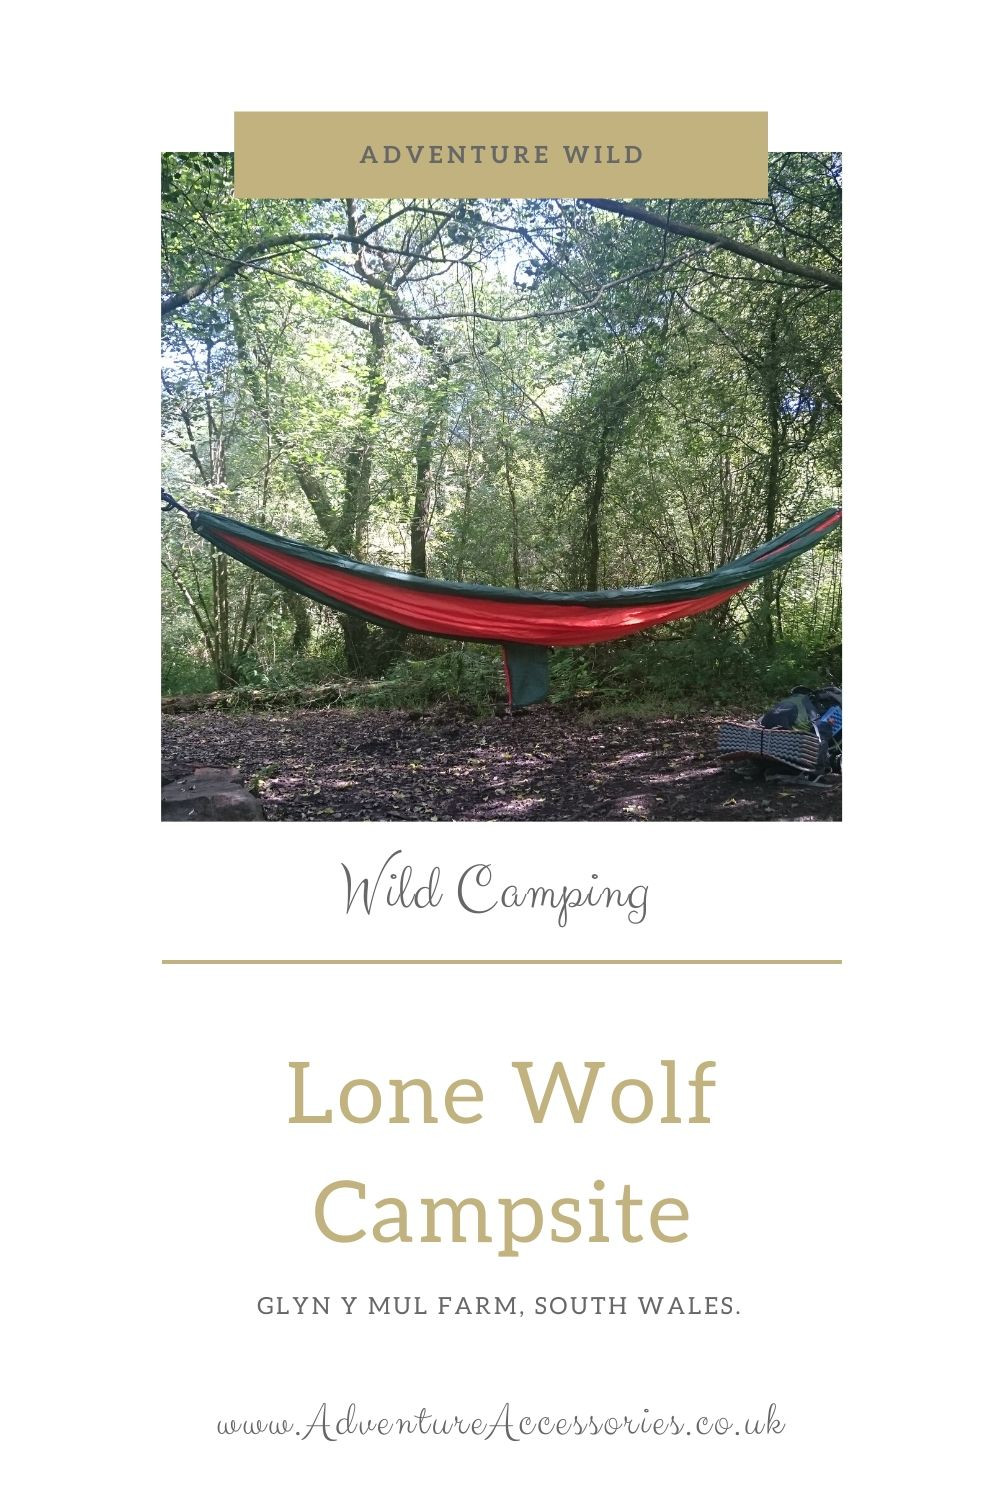 Lonewolf Campsite, Glyn y Mul Farm - Pinterest. Adventure Accessories